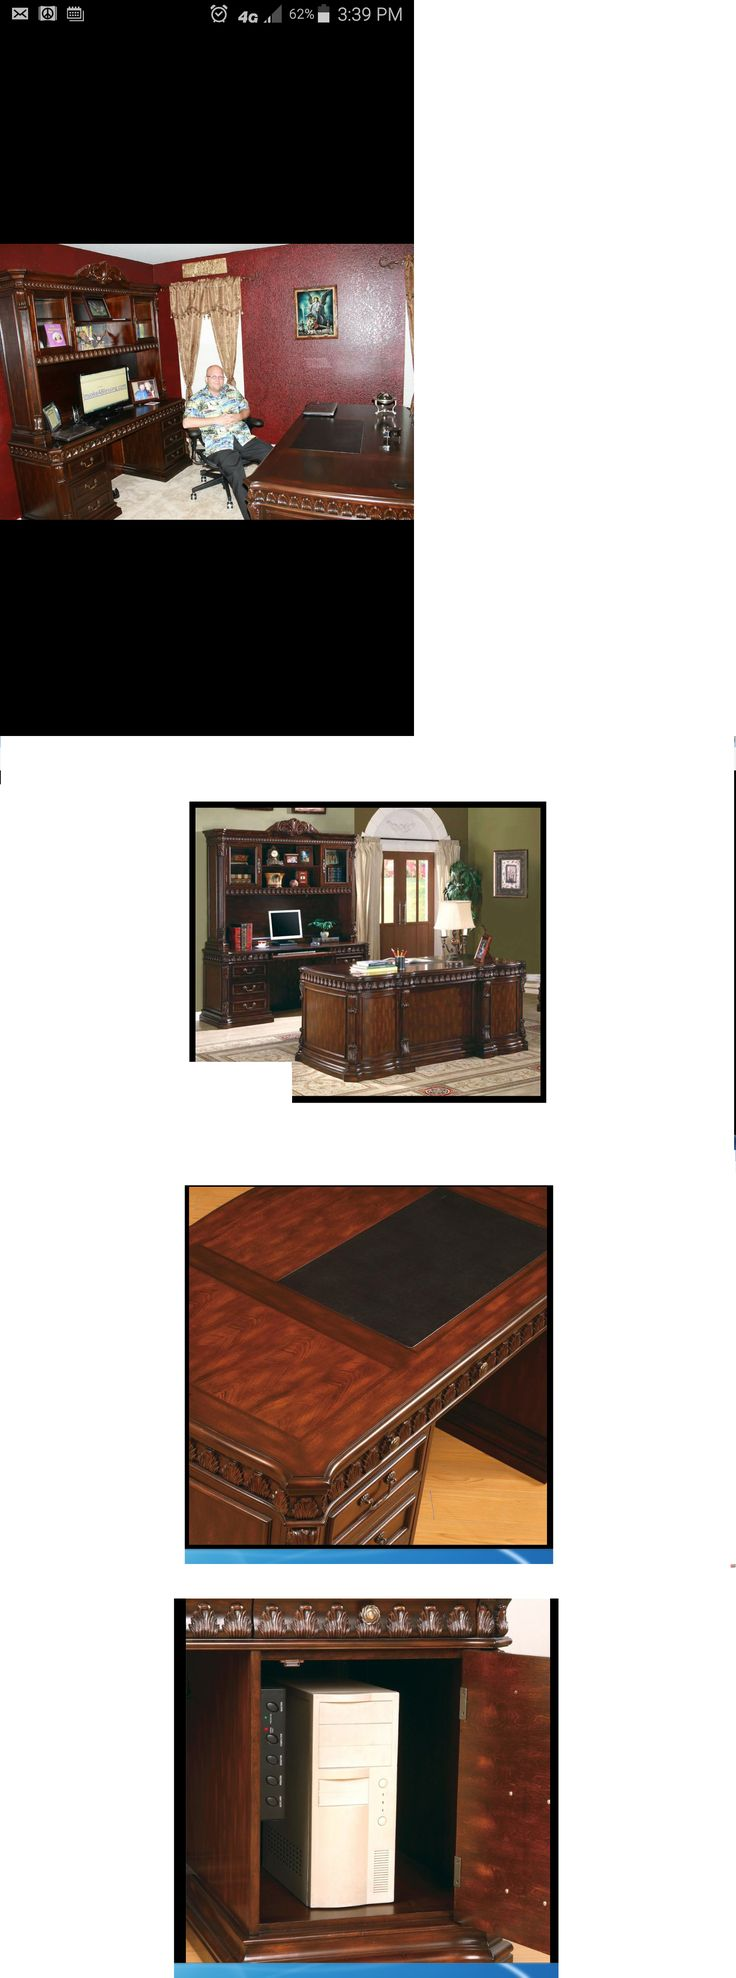 Office Furniture: Union Hill 3 Piece Executive Desk Set Wood Hutch Fine Office Furniture Credenza -> BUY IT NOW ONLY: $3700 on eBay!